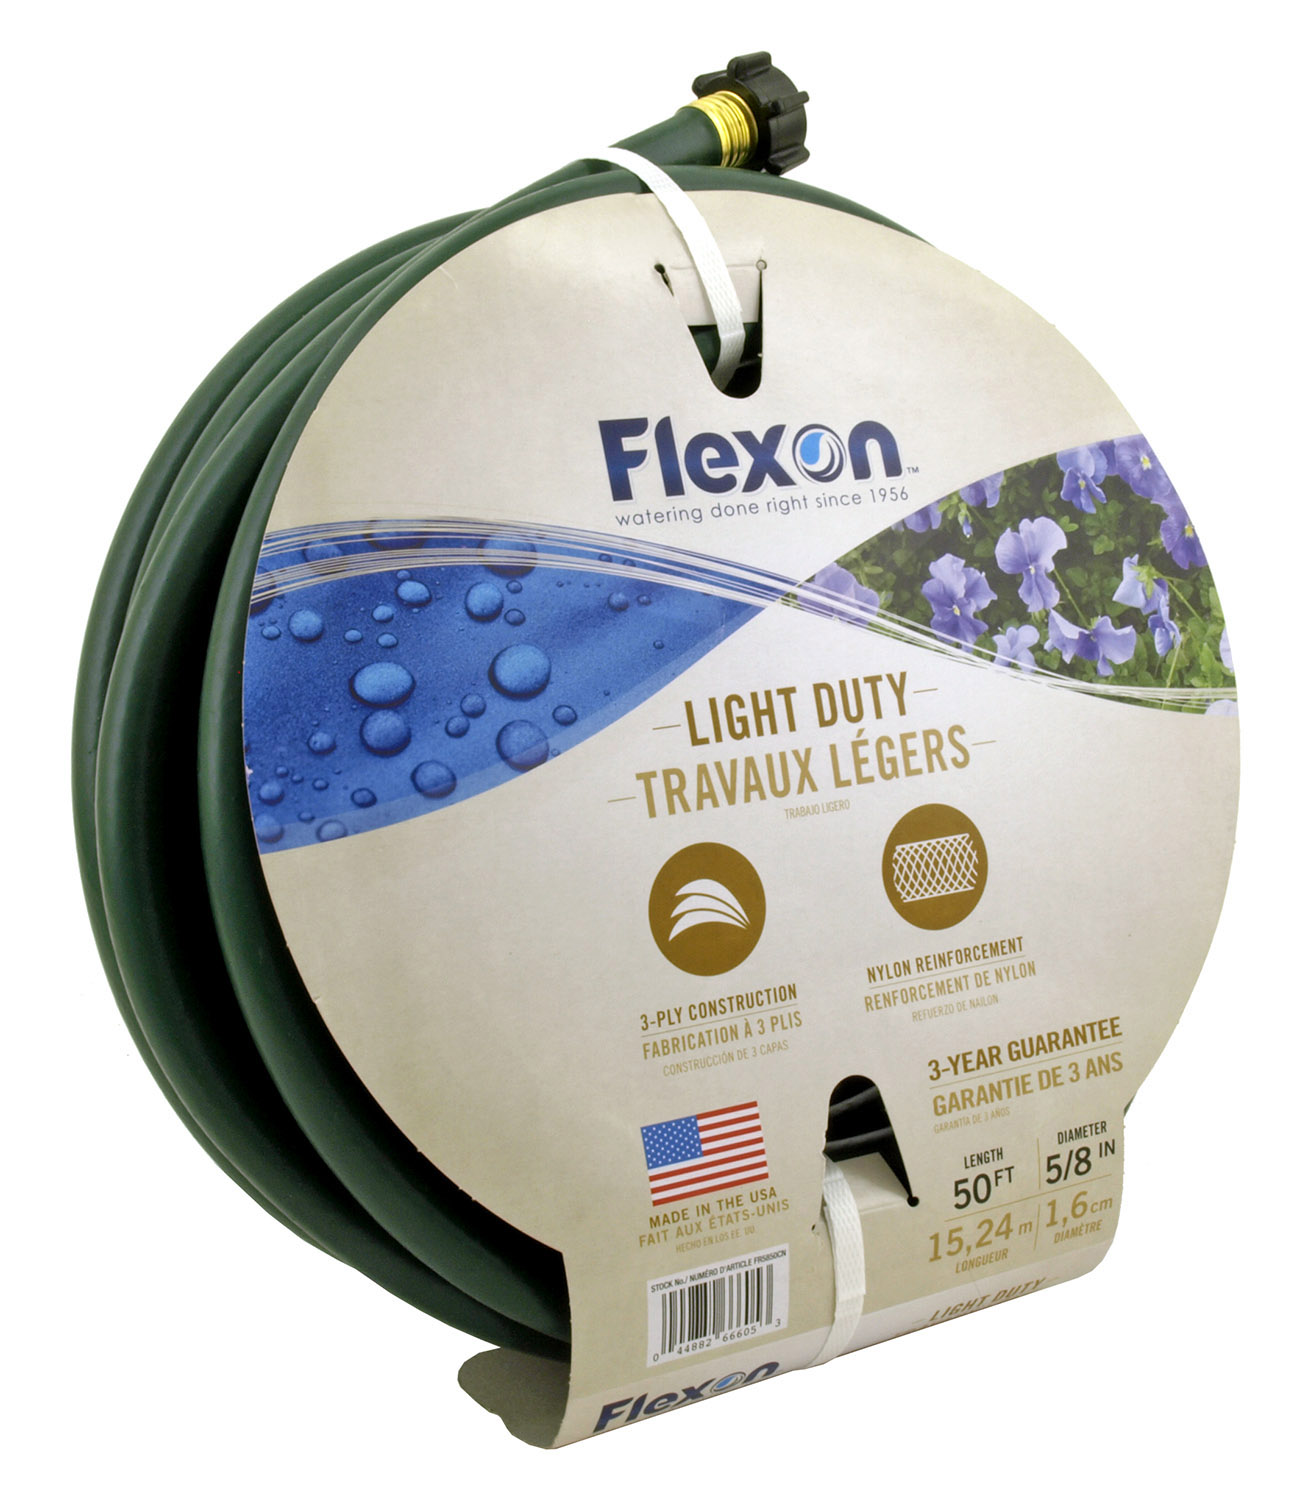 50' Light Duty 3 Ply 5/8 in Flexon Garden Hose - Green